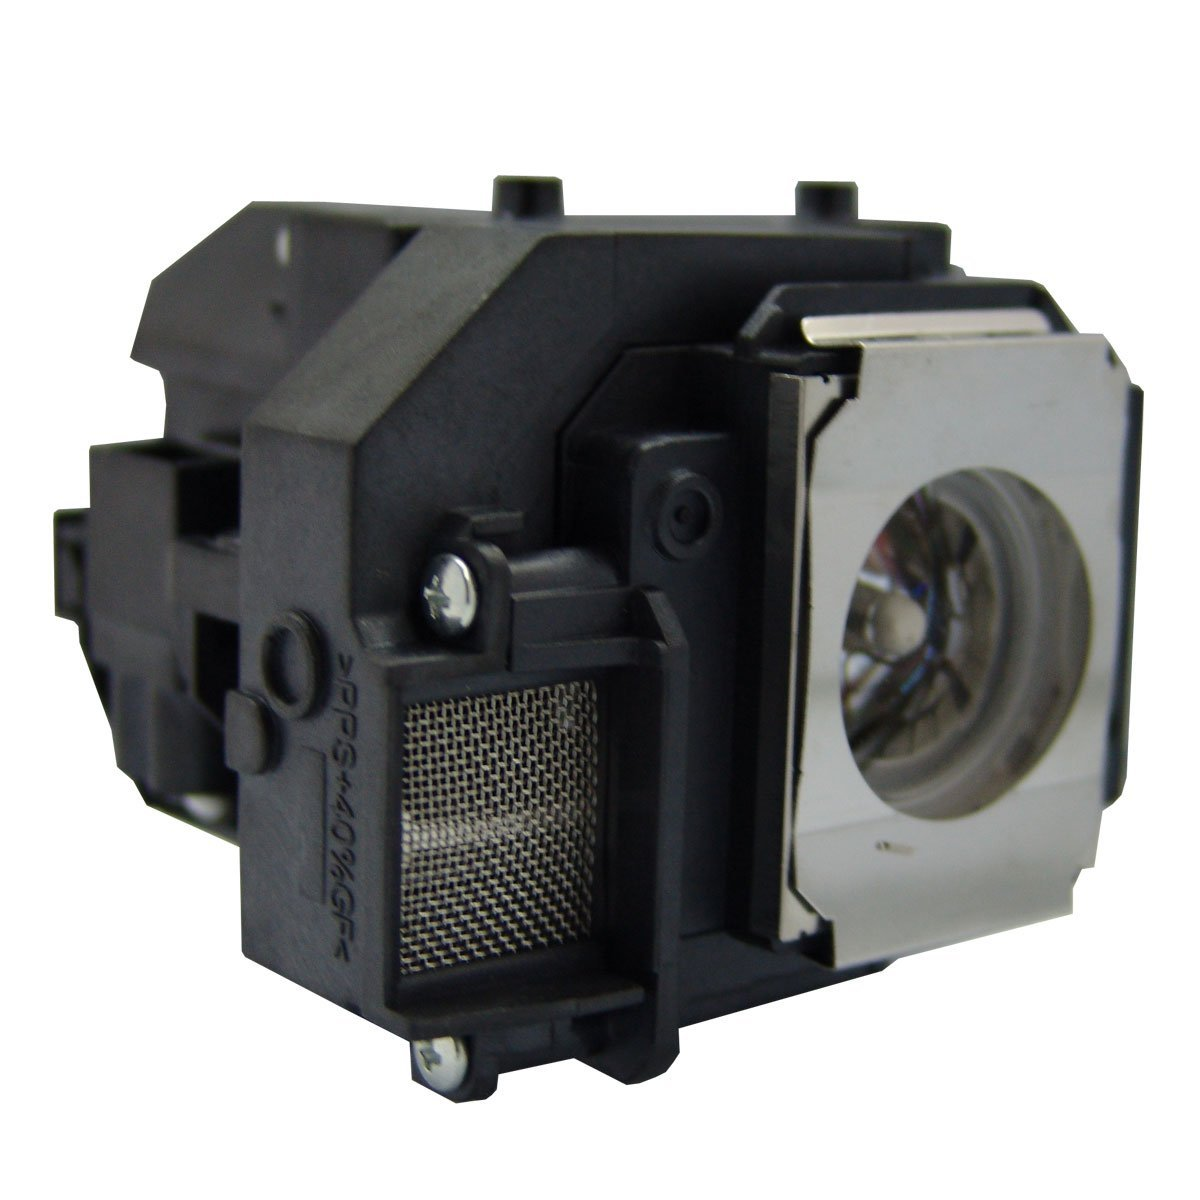 ELPLP56 V13H010L56 for Epson EH-DM3 EH-DM3S MovieMate 60 MovieMate 62 Projector Bulb Lamp with housing kslamps elplp56 v13h010l56 replacement lamp with housing for epson 60 62 epson eh dm3 projectors